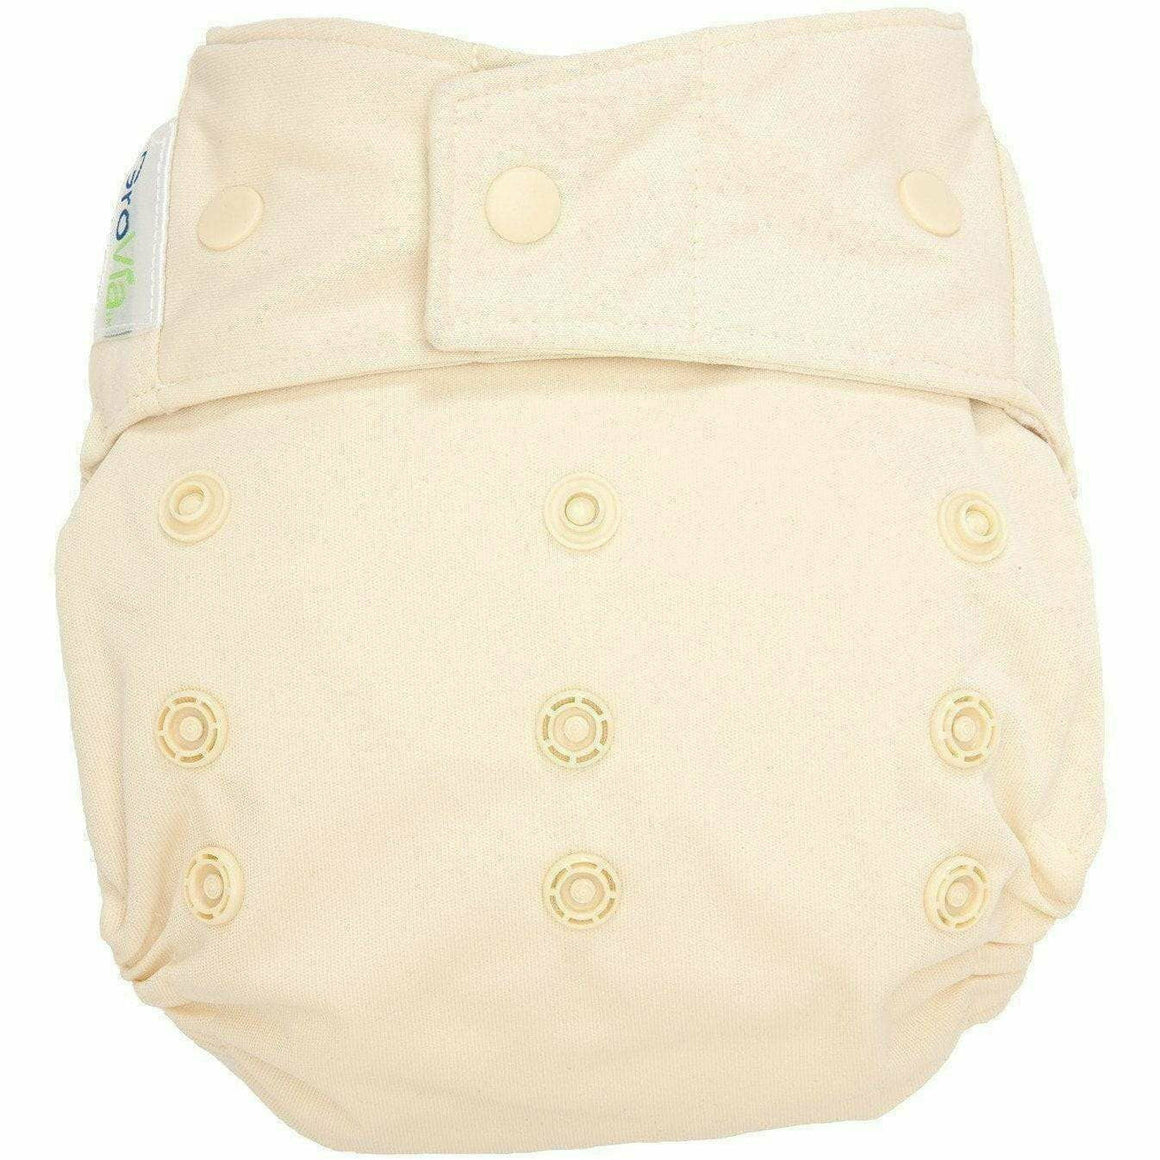 GroVia Cloth Diaper Shell - Snap Closure